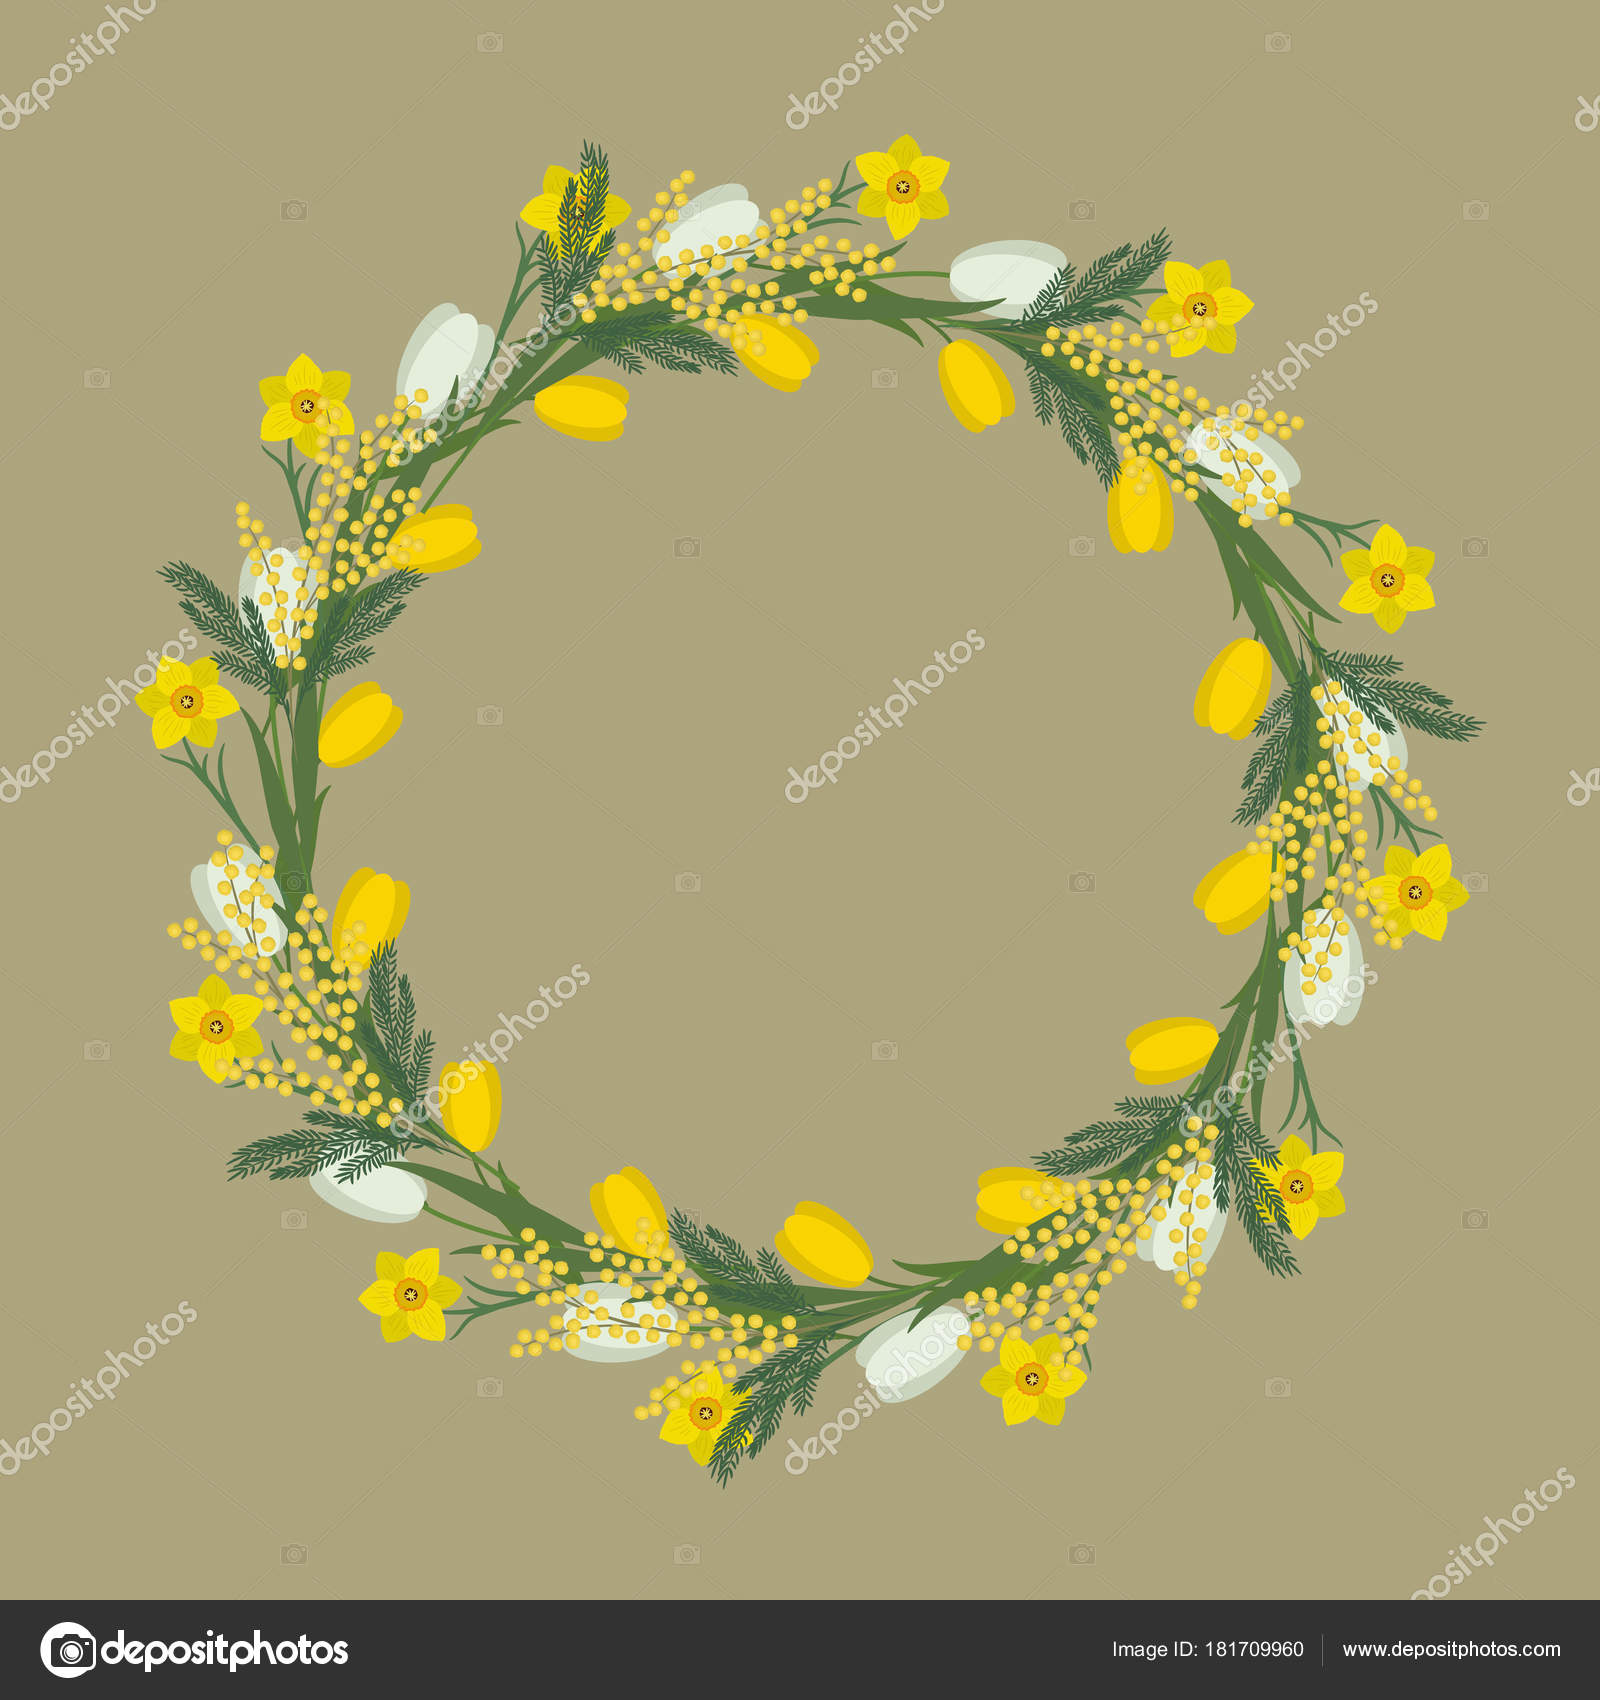 Floral Frame Spring Flowers Yellow White Flowers Tulips Daffodils